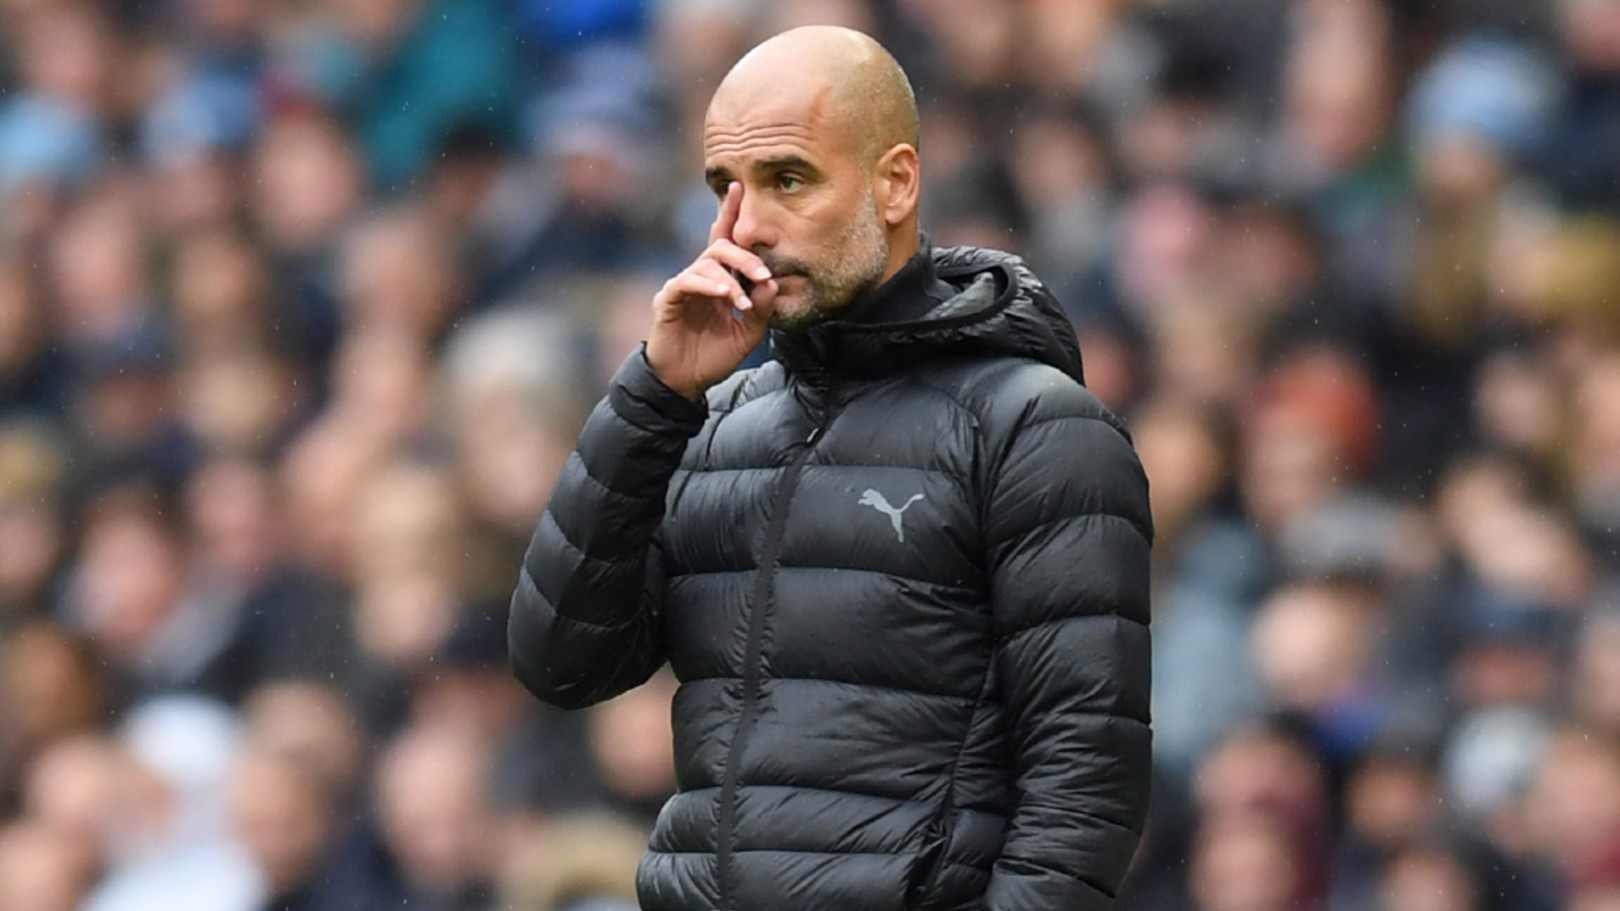 OBSERVATION: Pep Guardiola analyses the first half